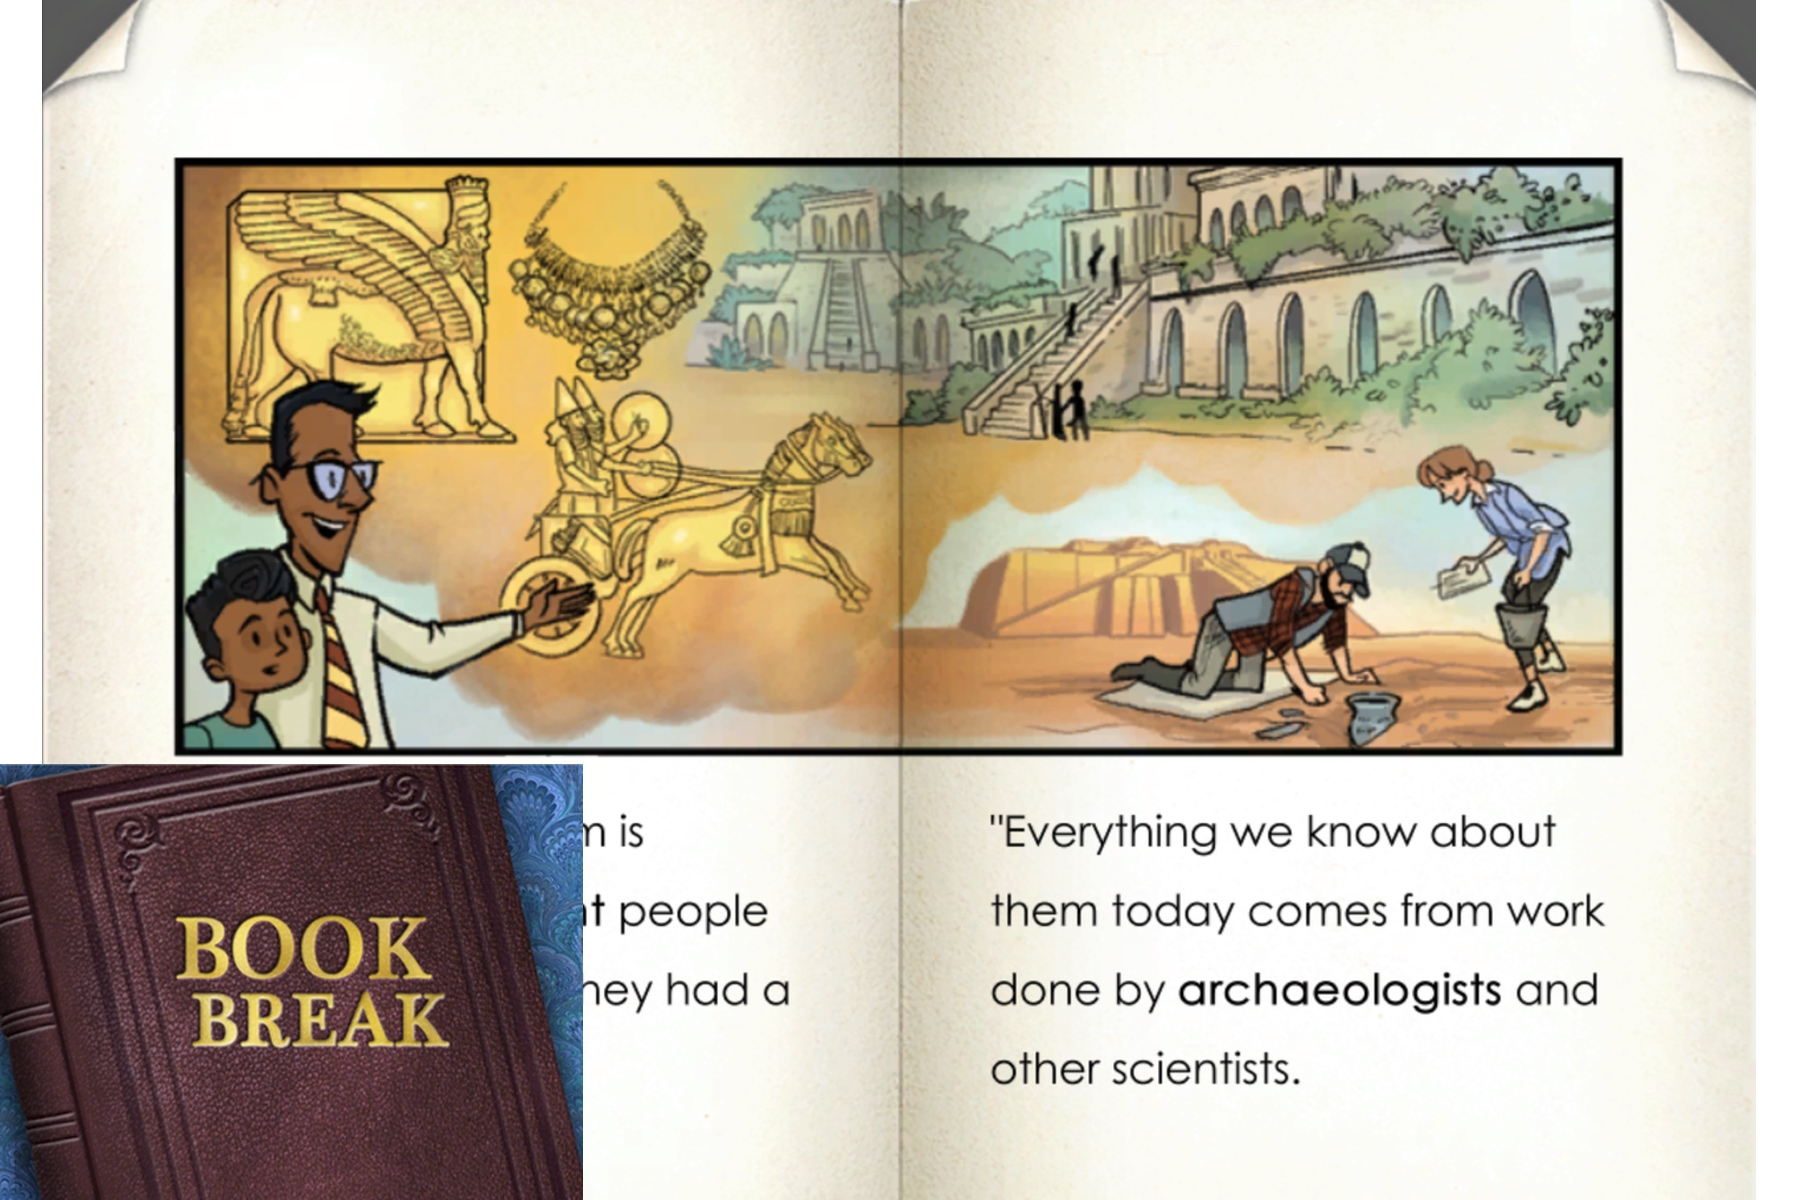 The new Book Break activity allows students to read enriched passages.